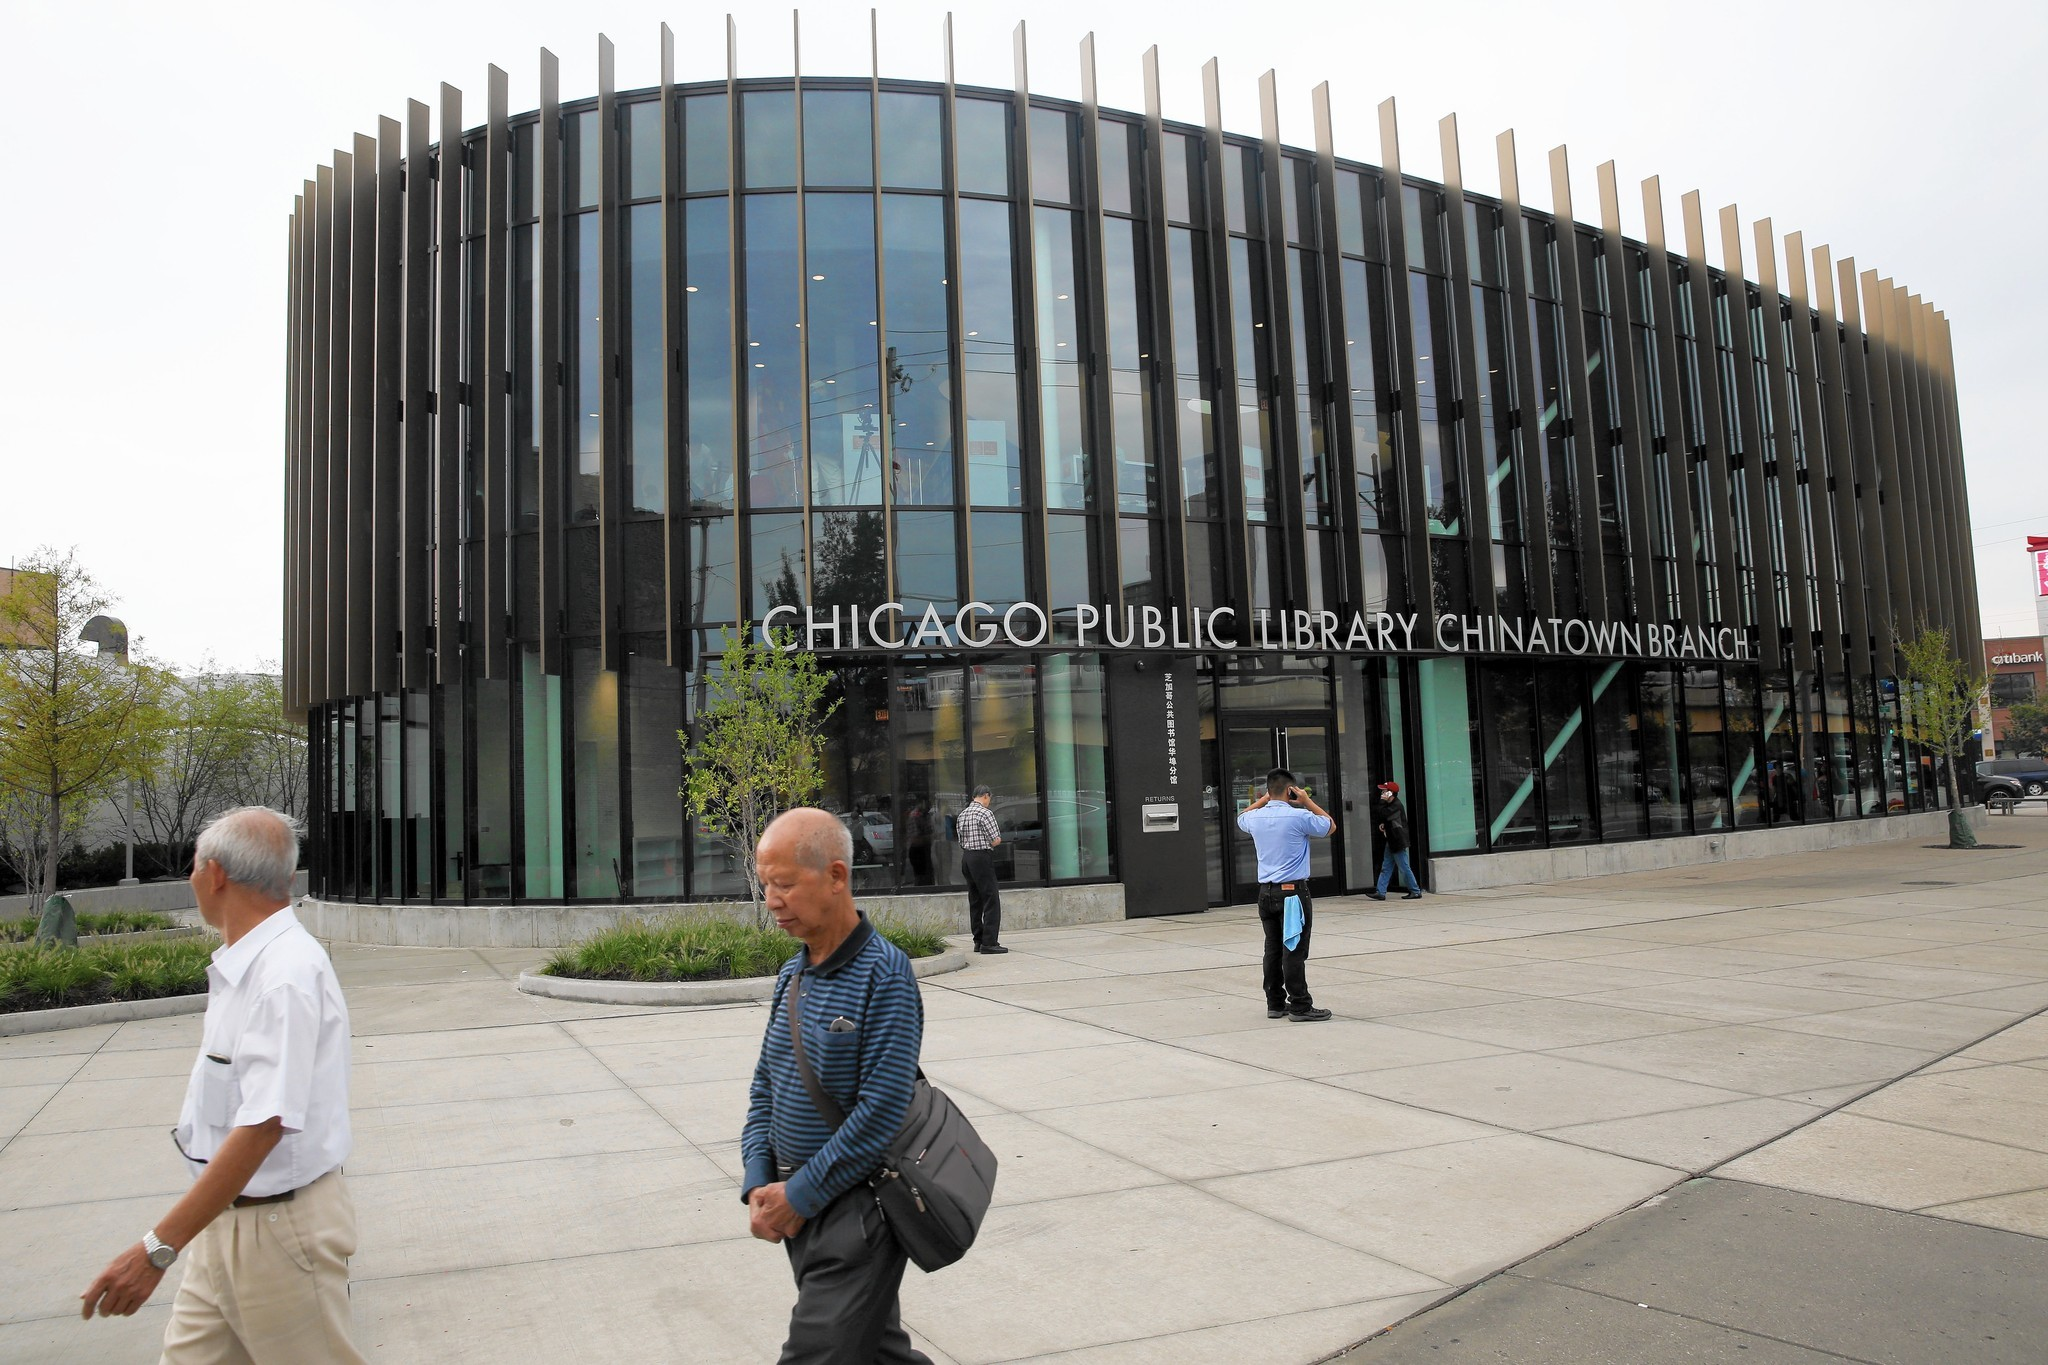 Chicago's Chinatown library breaks cookie-cutter mold